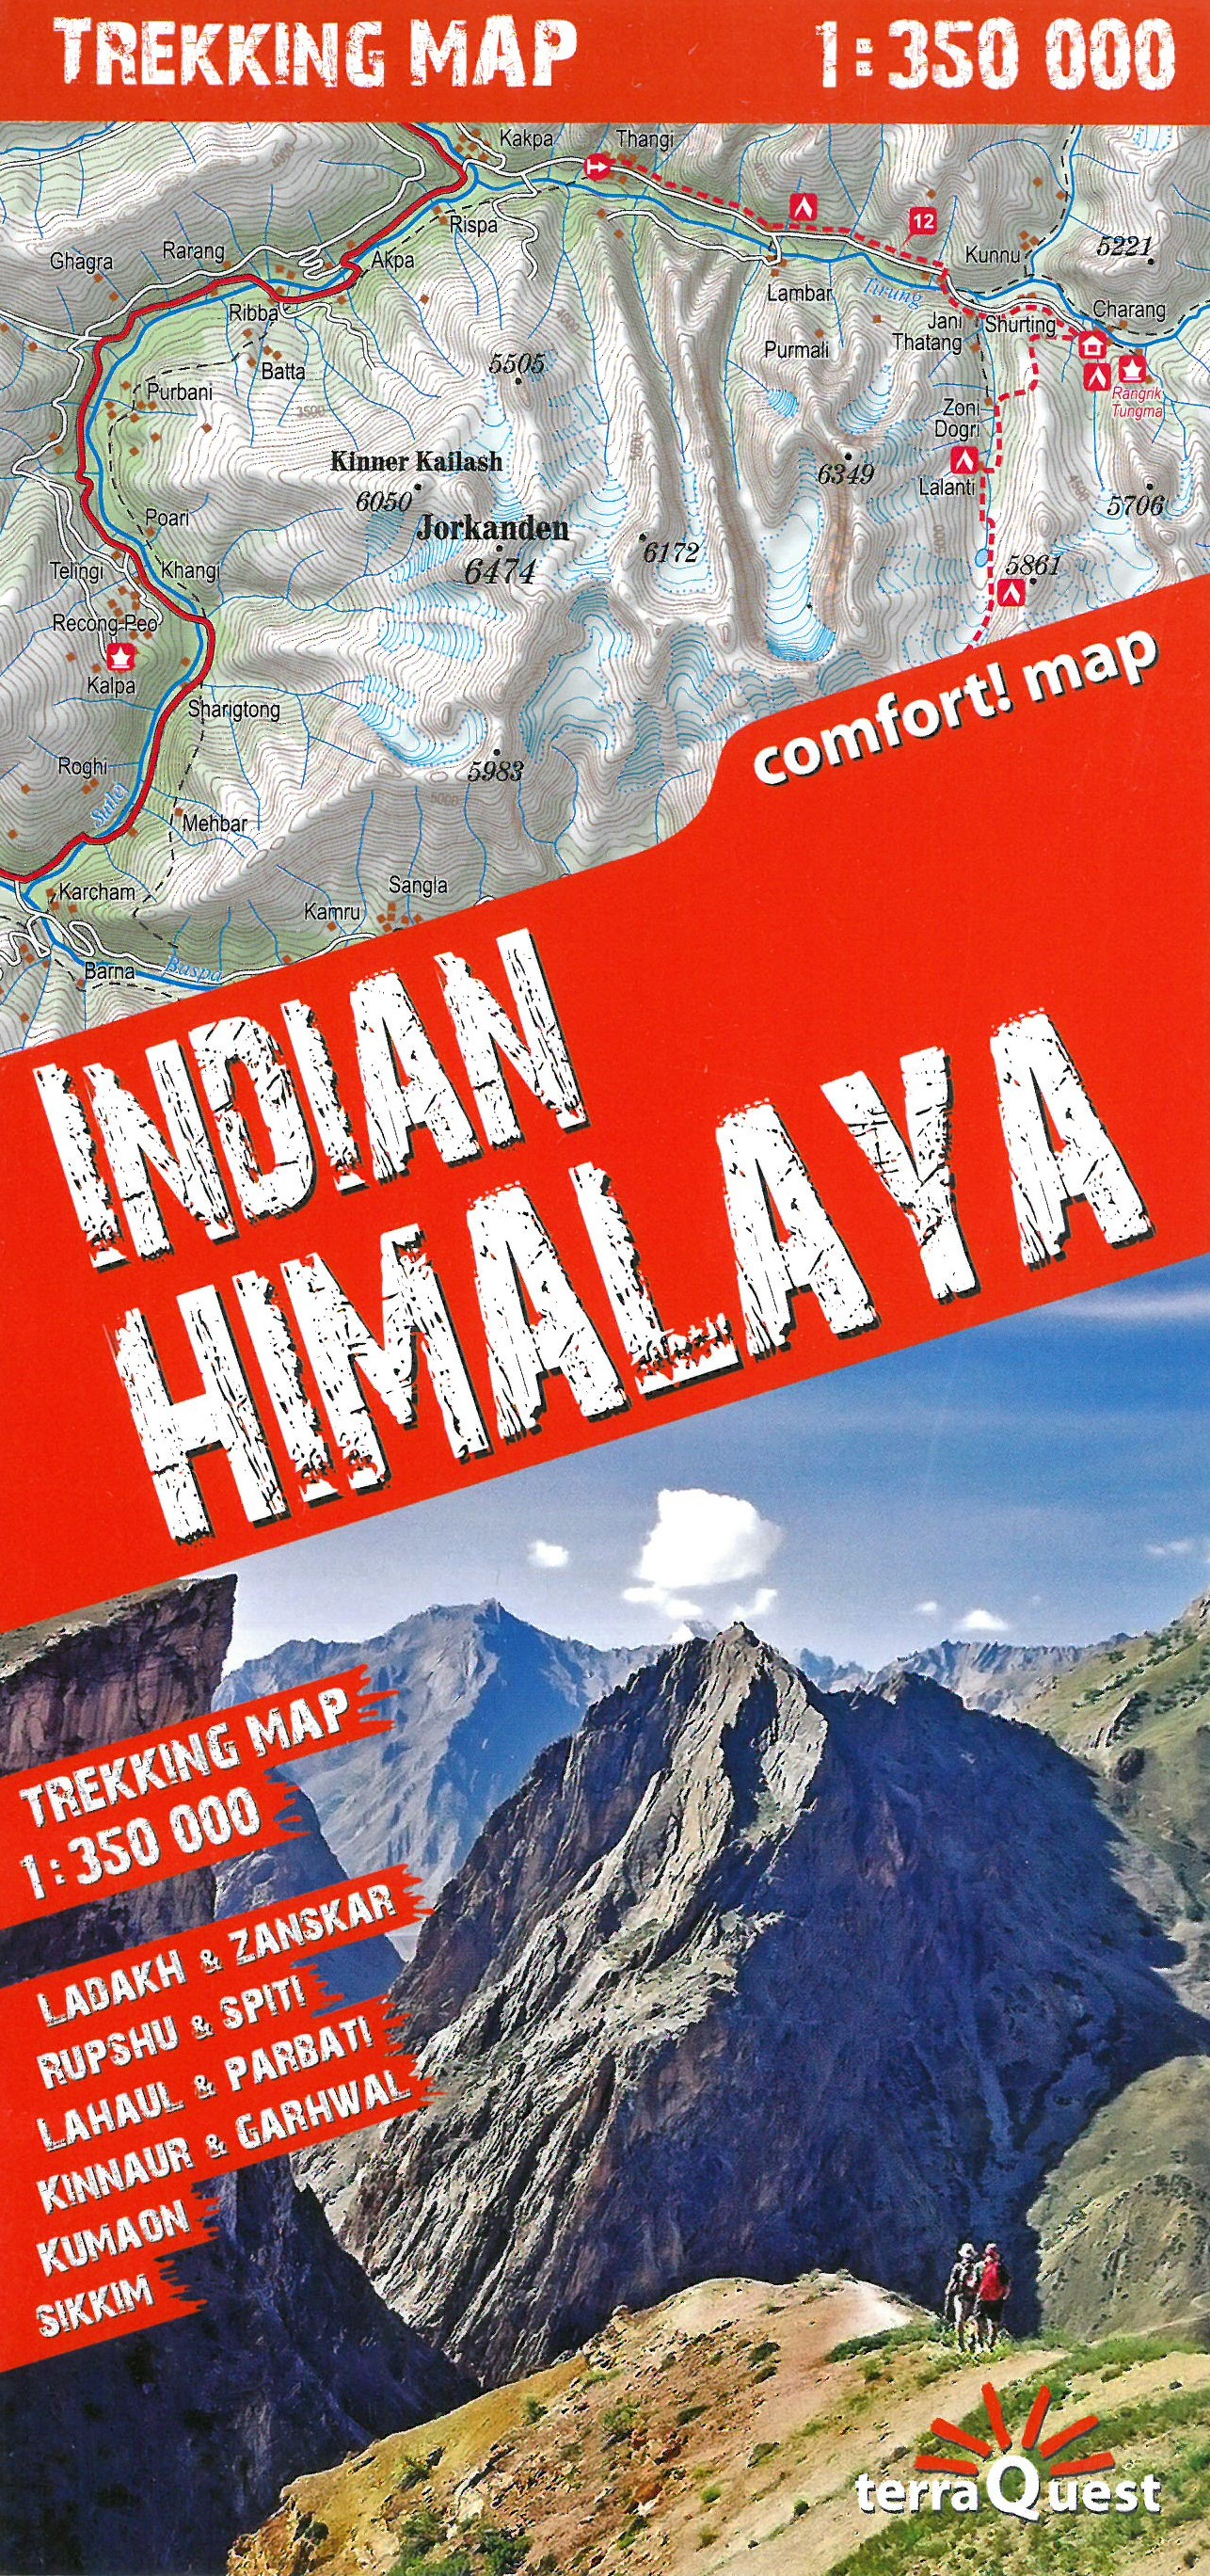 Wandelkaart Trekking map Indian Himalaya | TerraQuest